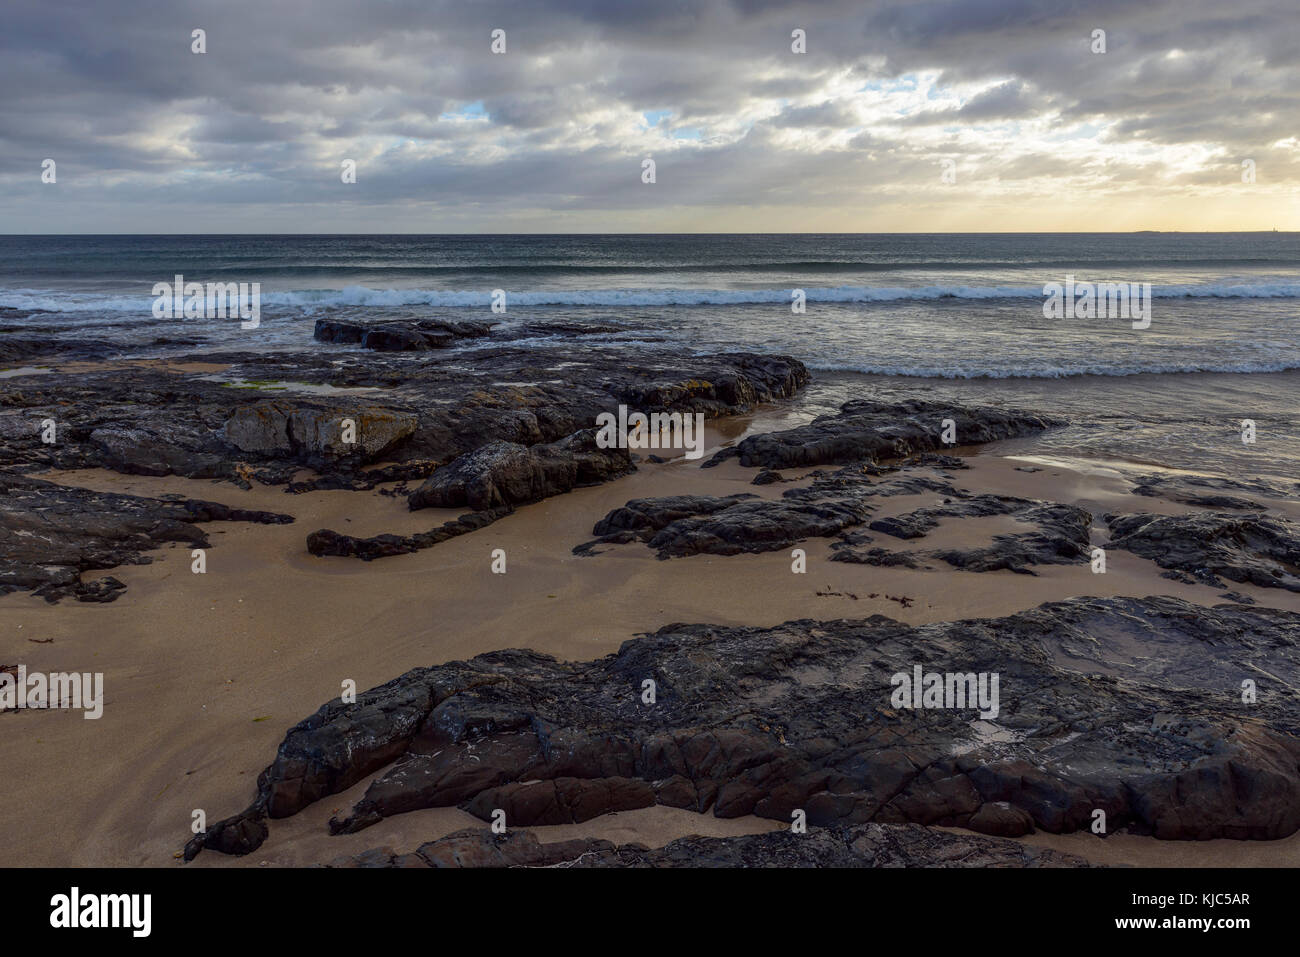 Rocky beach and the surf of the North Sea at Bamburgh in Northumberland, England, United Kingdom - Stock Image